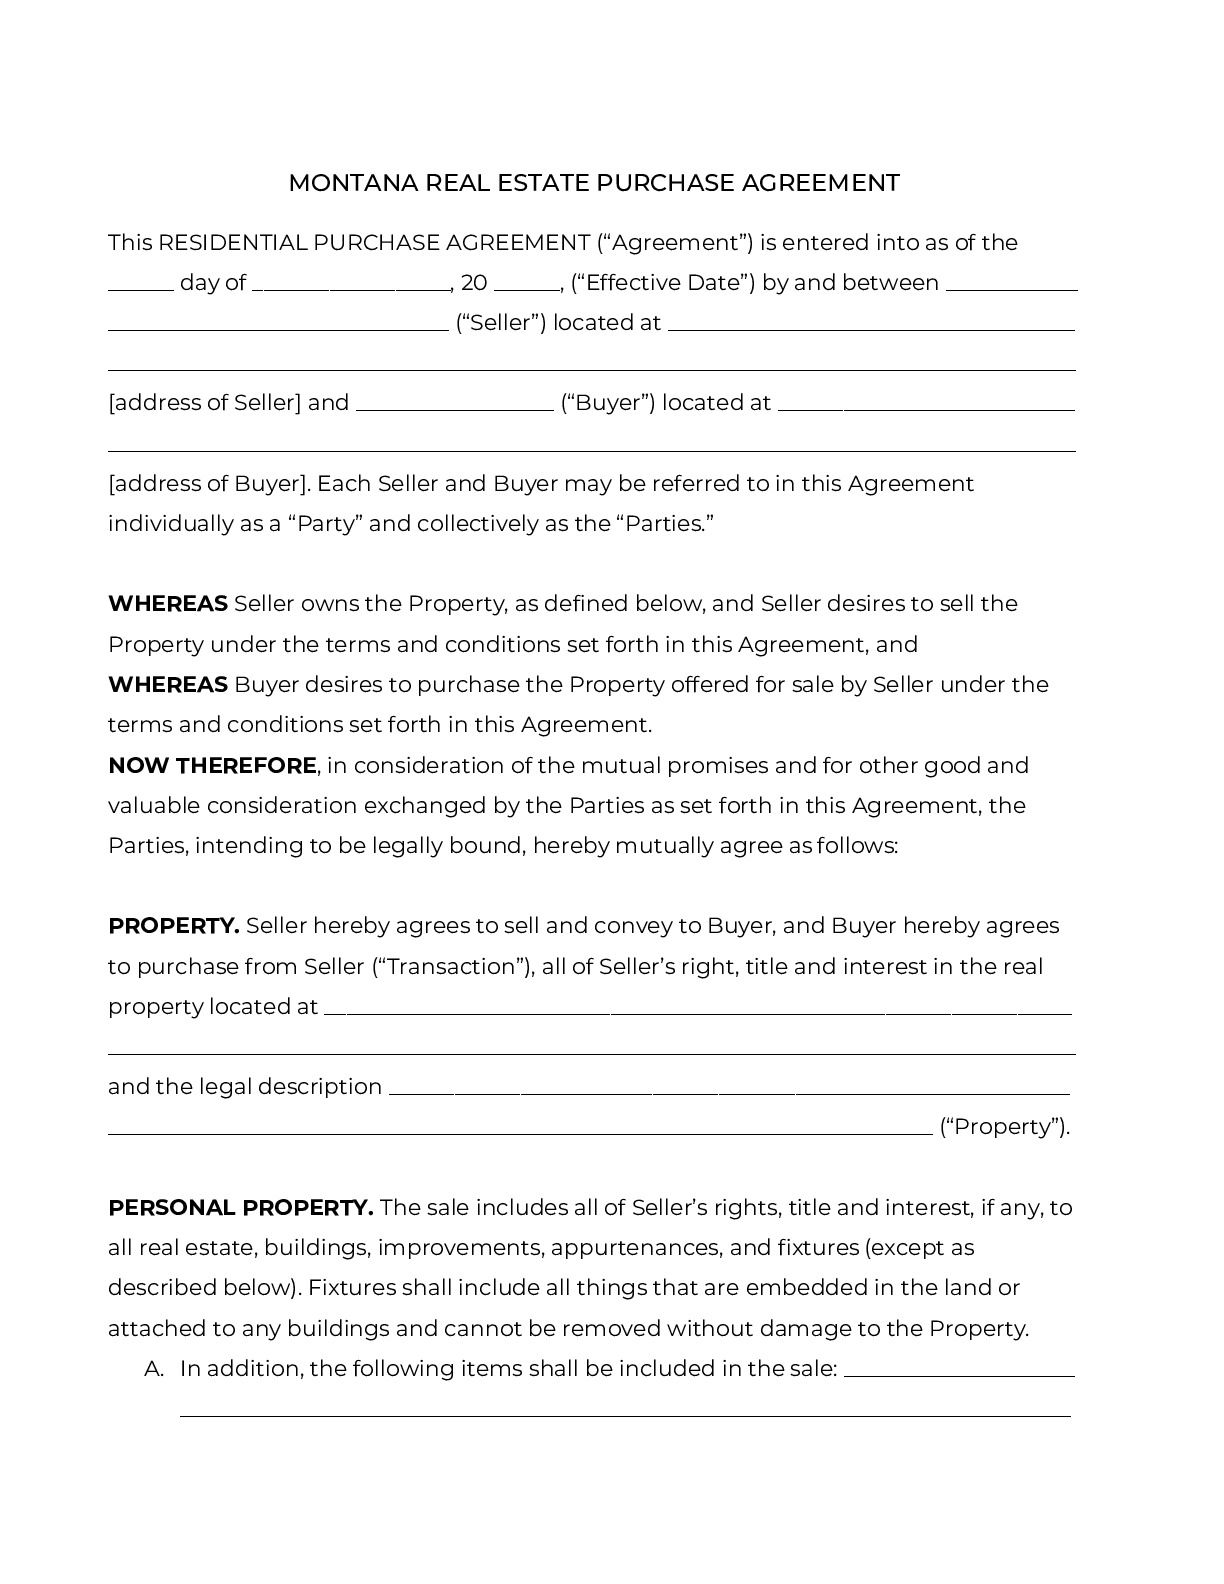 002 Phenomenal Real Estate Buy Sell Agreement Template Montana High Definition  Form FreeFull